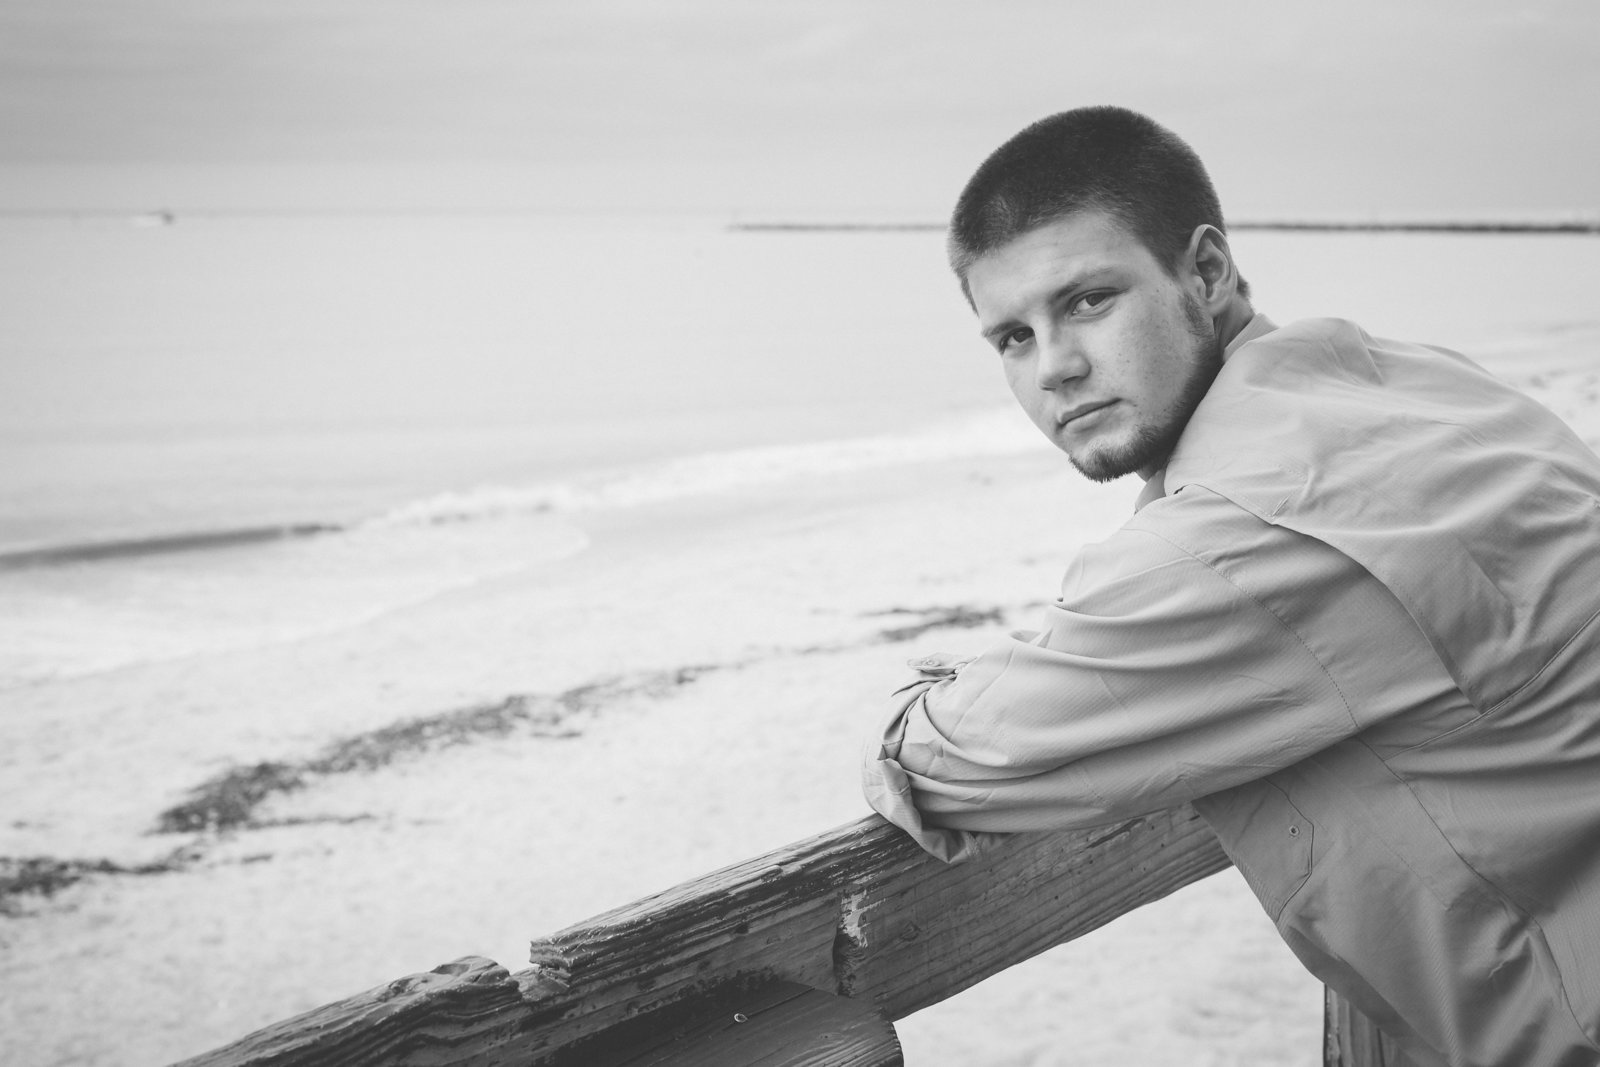 Jake.Senior.12.21.15 (108 of 142)